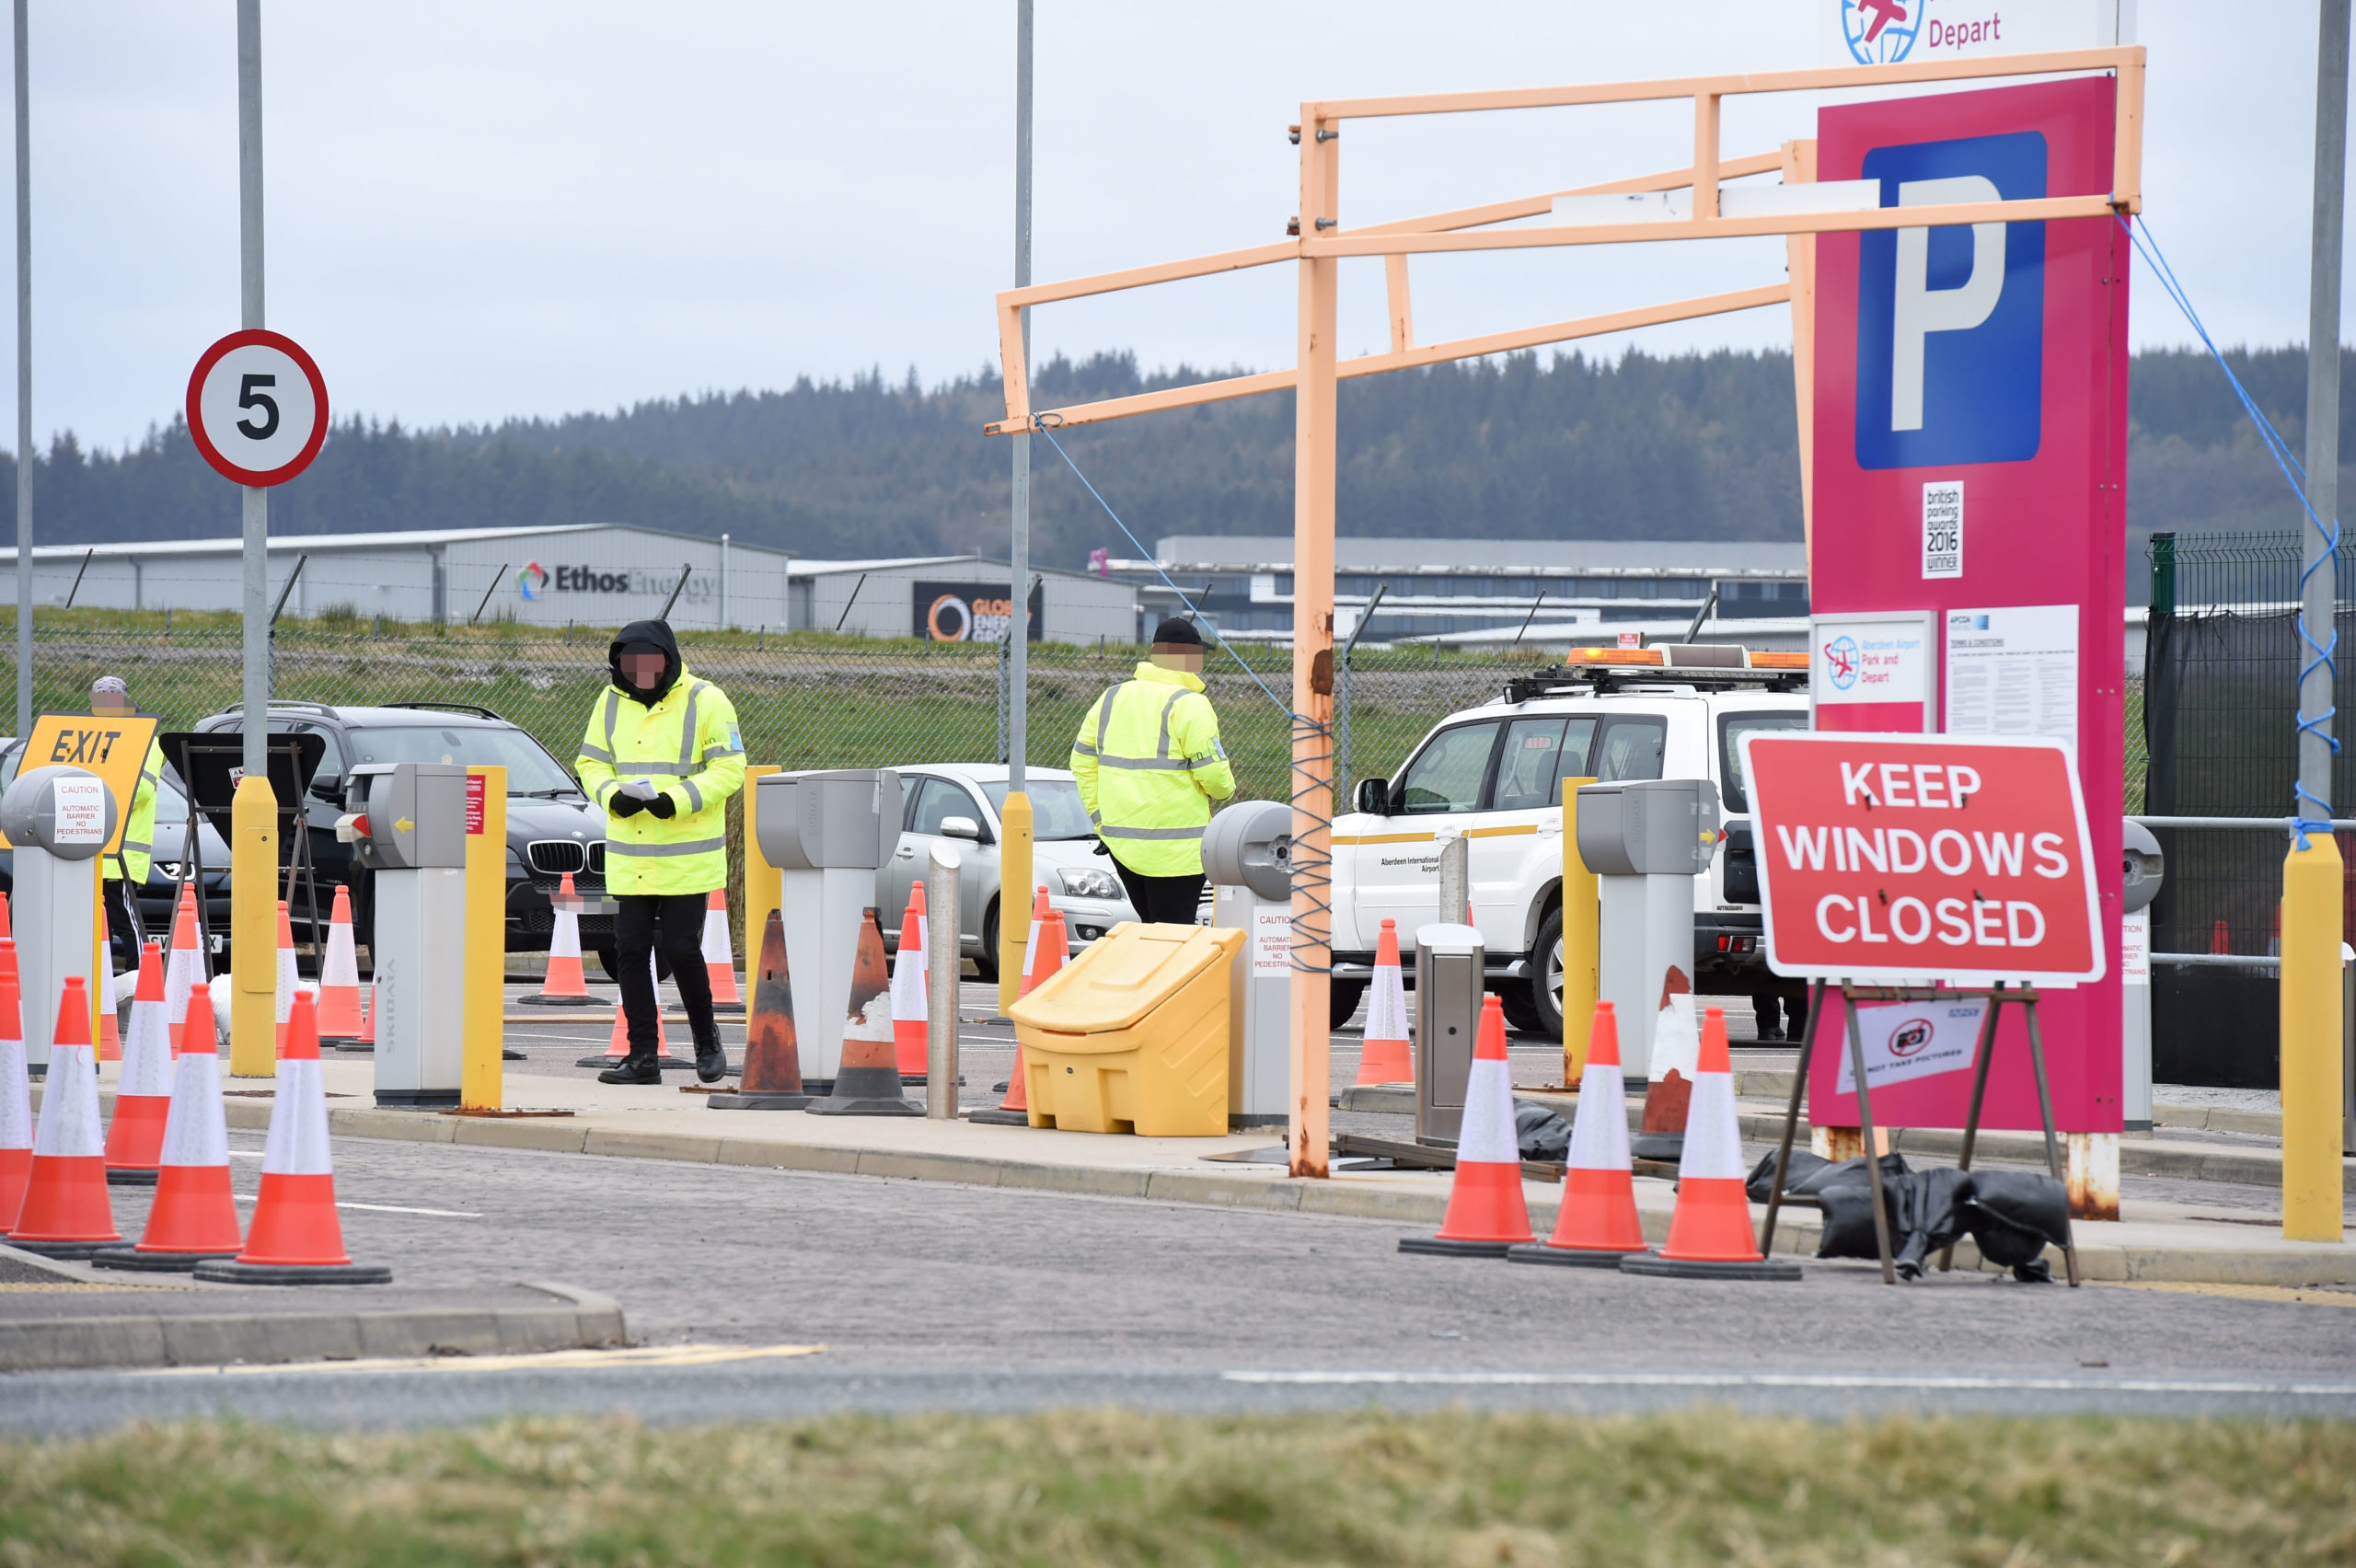 The drive-thru testing centre at Aberdeen airport